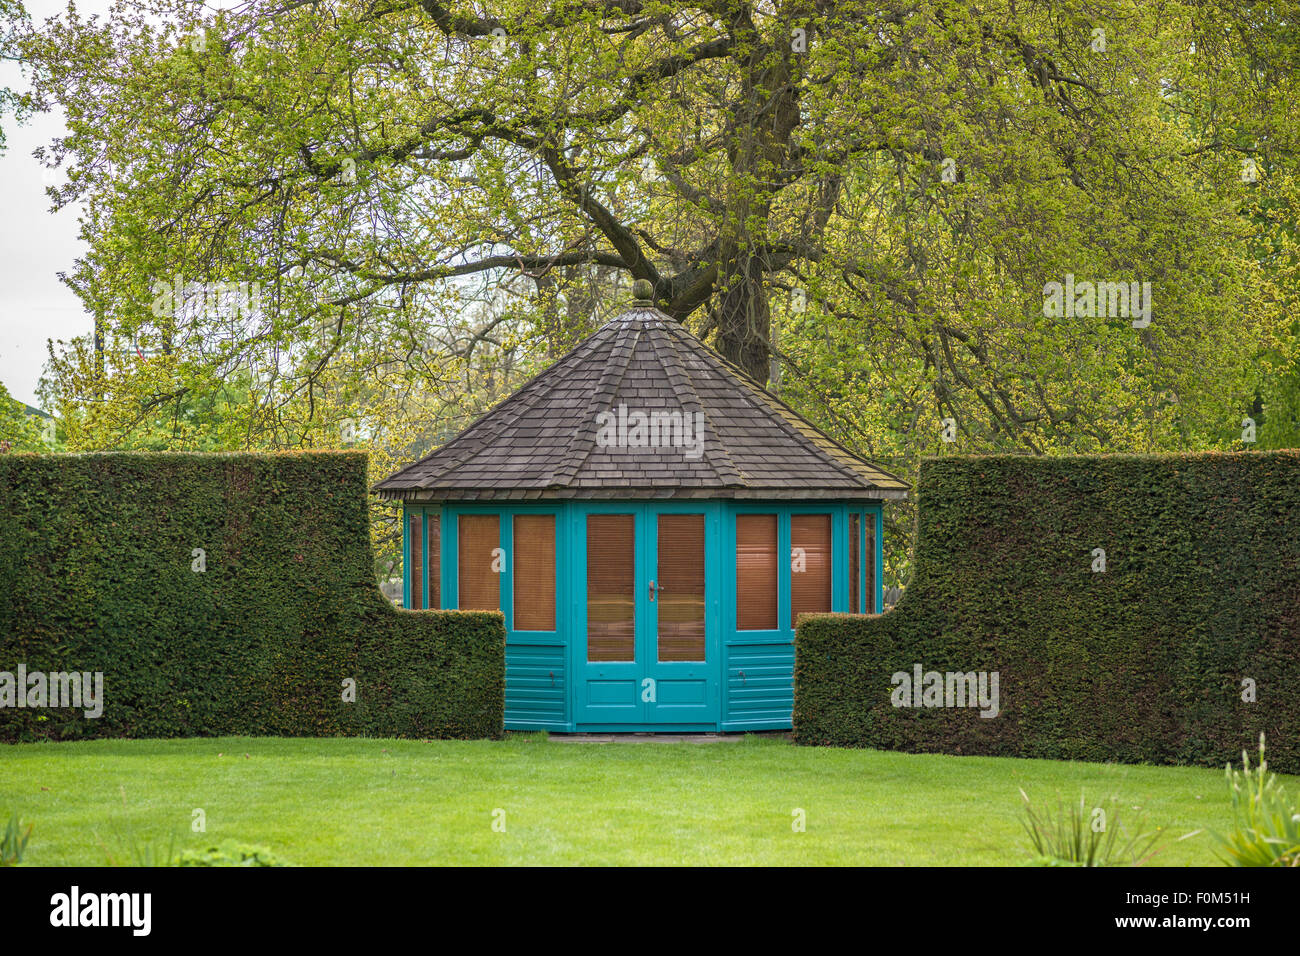 wooden summer house in a garden - Stock Image